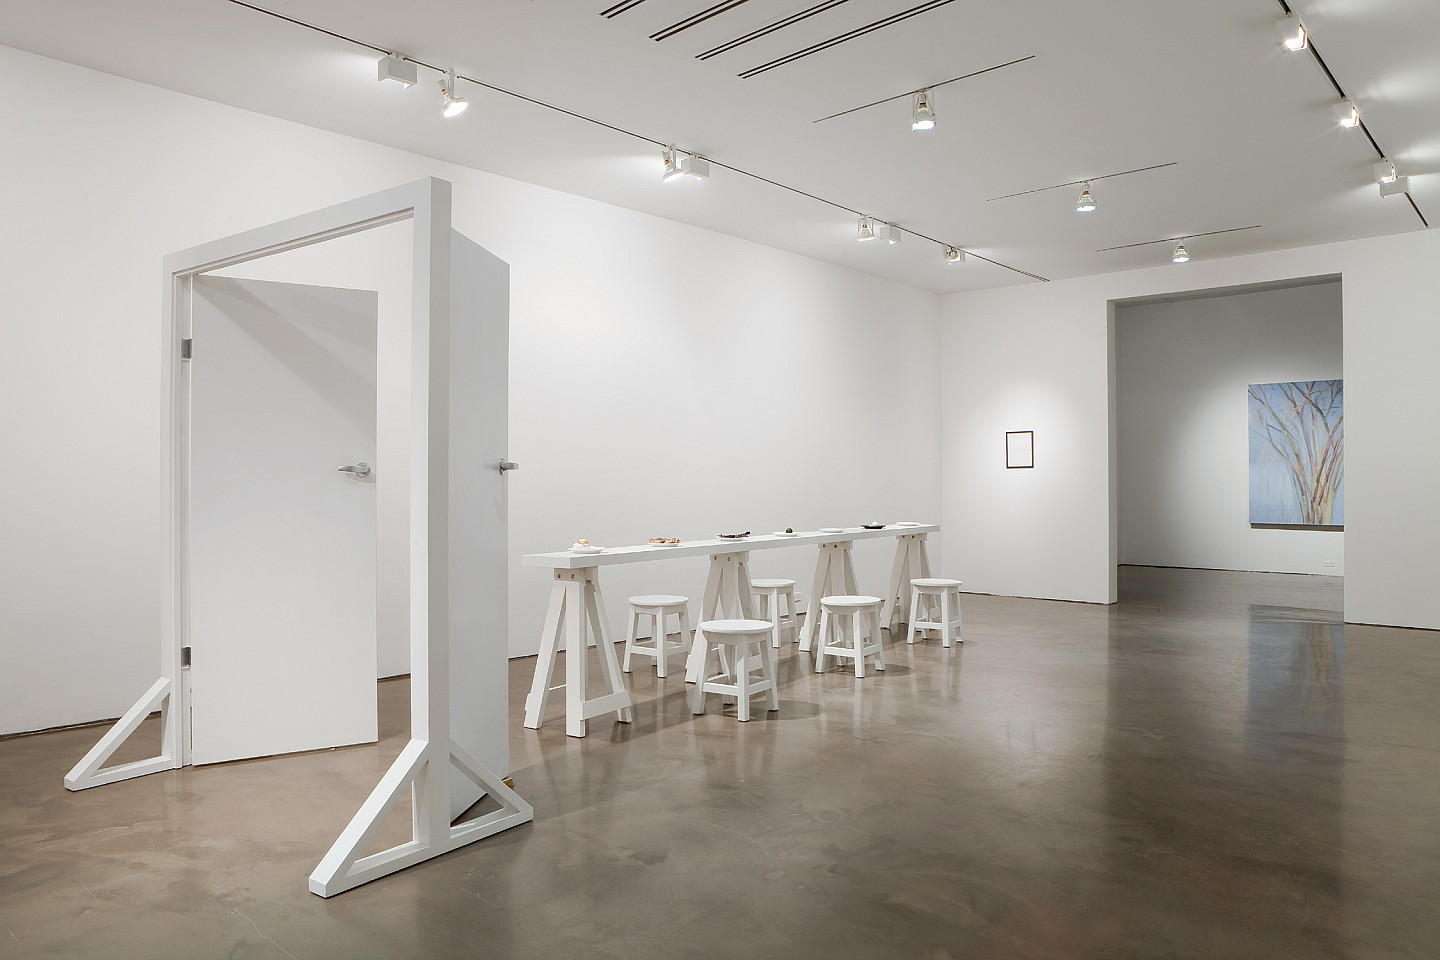 Victor Grippo ,   La comida del artista (Puerta amplia- Mesa estrecha)  ,  1991     installation; painted French door, board on four sawhorses, five wooden stools, seven ceramic plates, organic elements, gold leaves, and framed text.     84 1/2 x 63 x 216 1/2 in/ 215 x 160 x 550 cm 